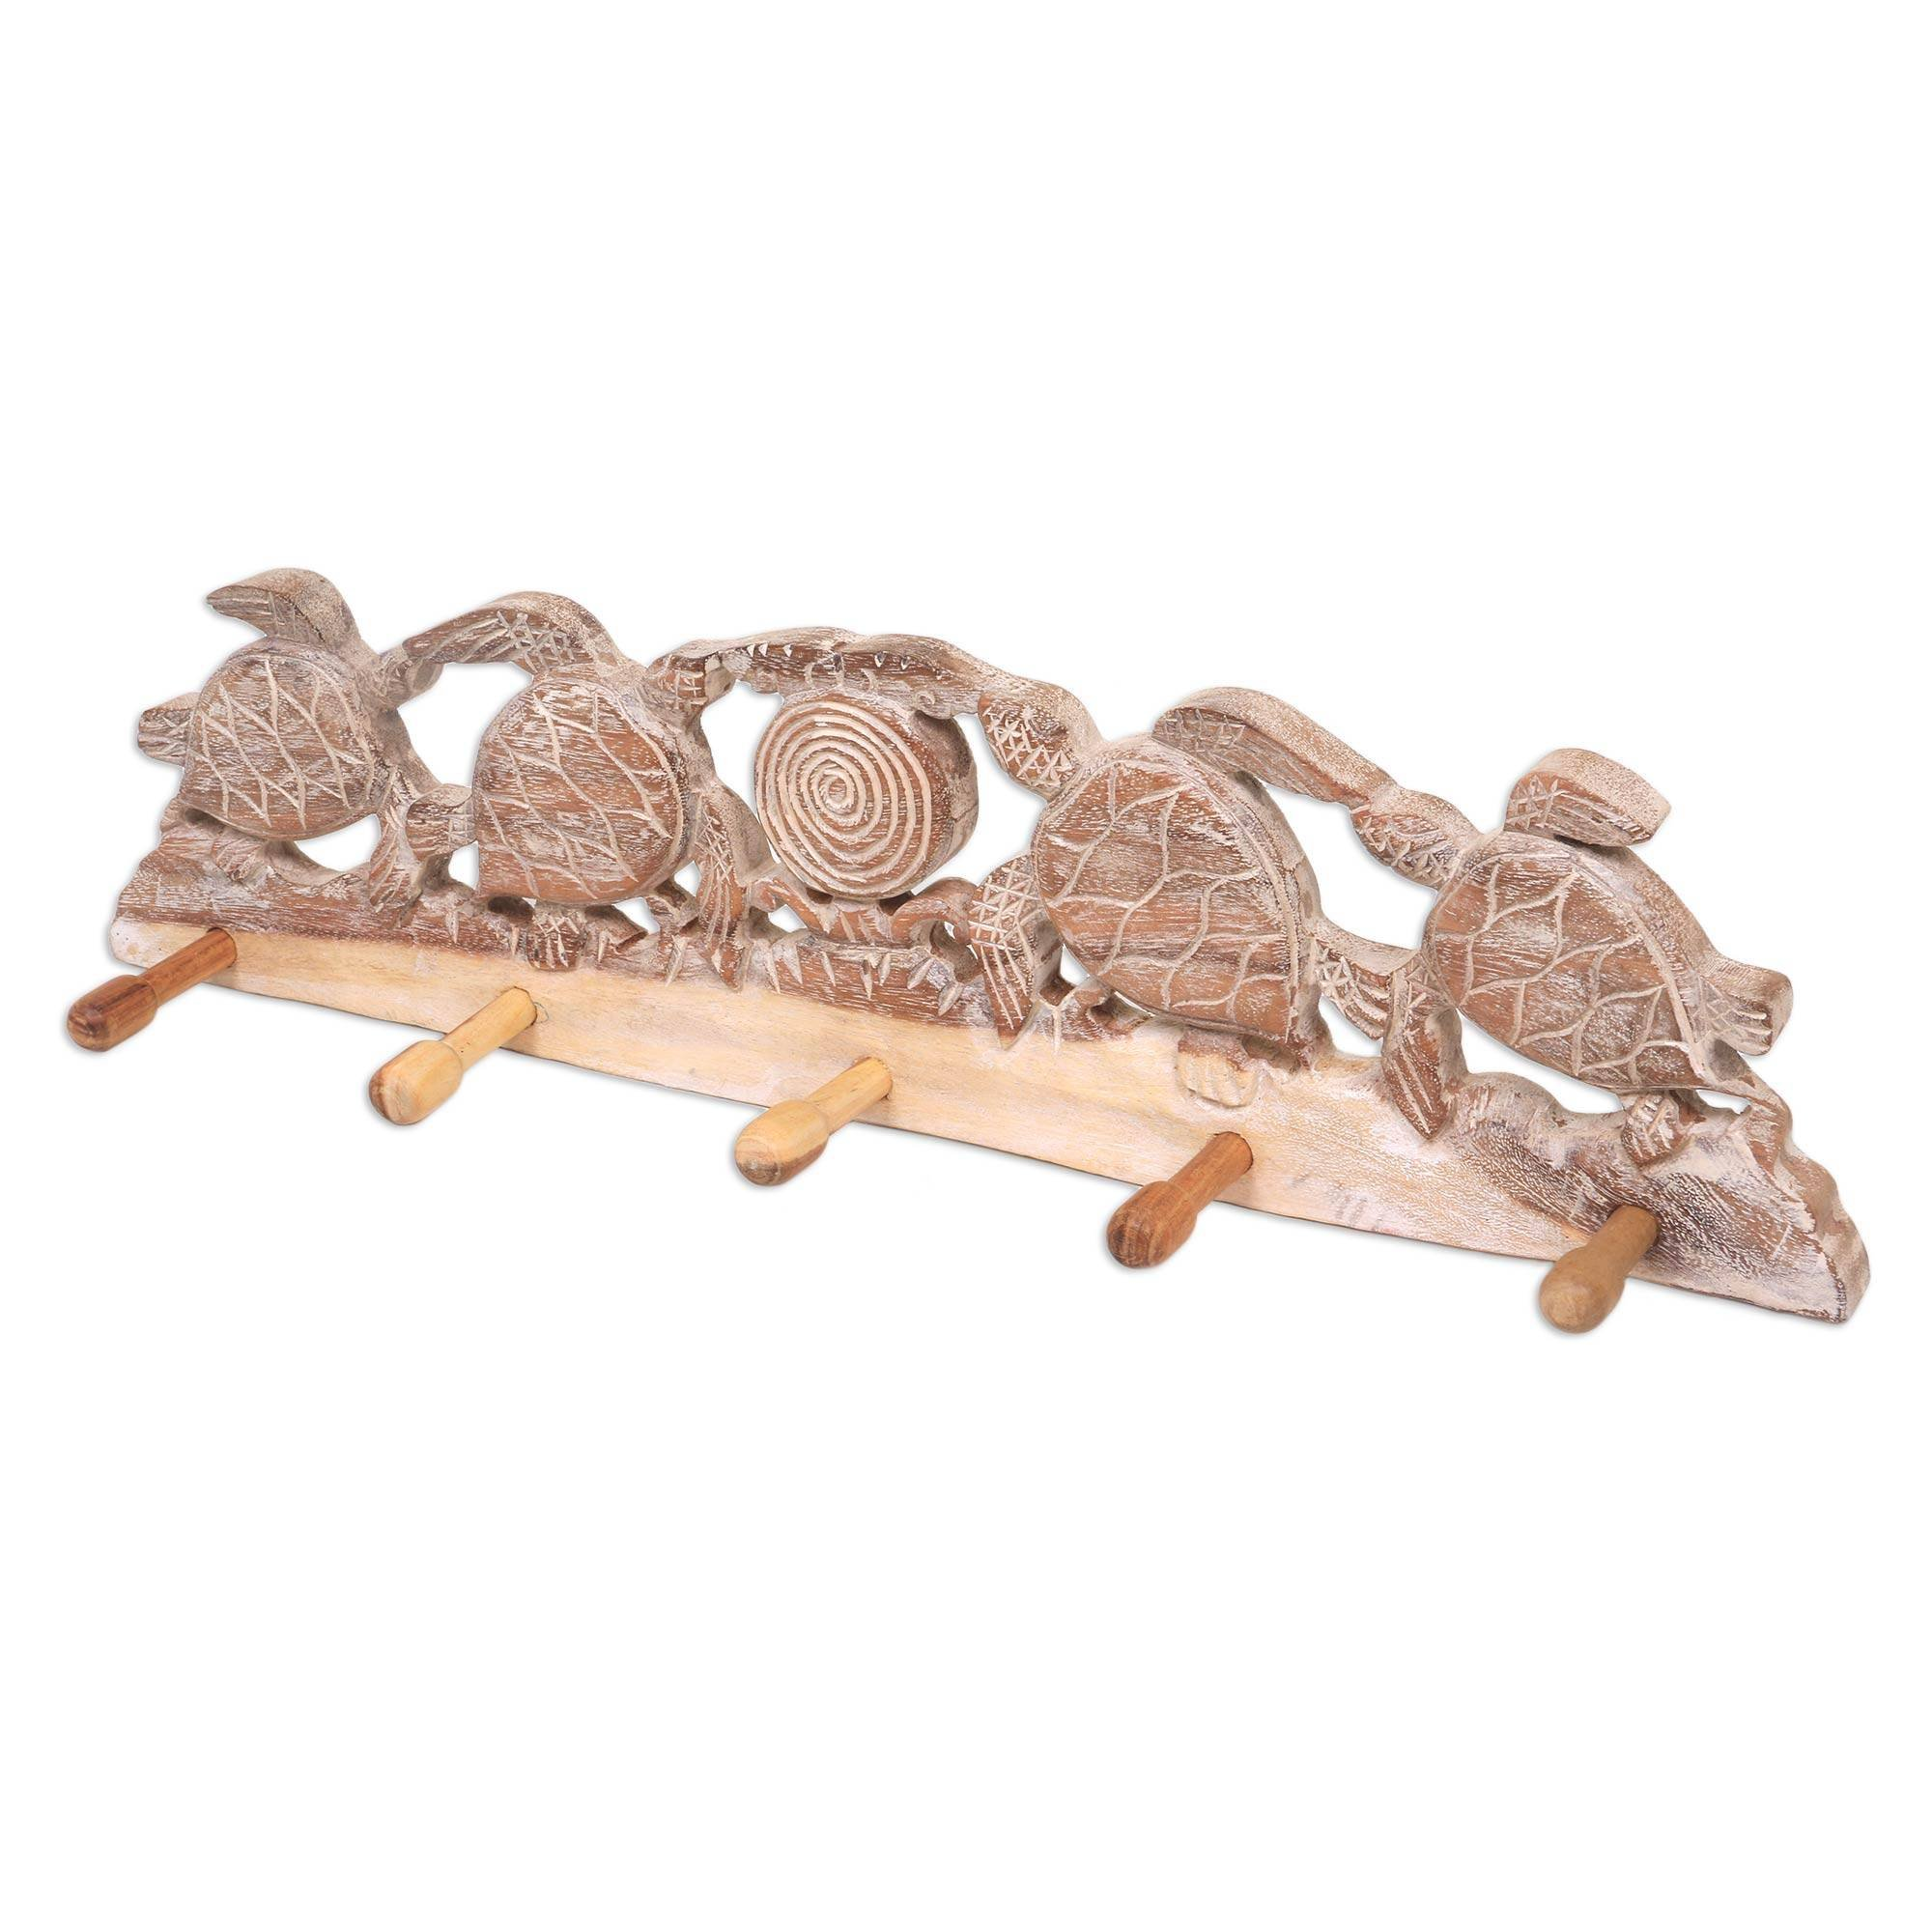 NOVICA Animal Themed Wood Wall Mounted Coat Hanger, Brown and White, Turtle Bay Beach' by NOVICA (Image #4)